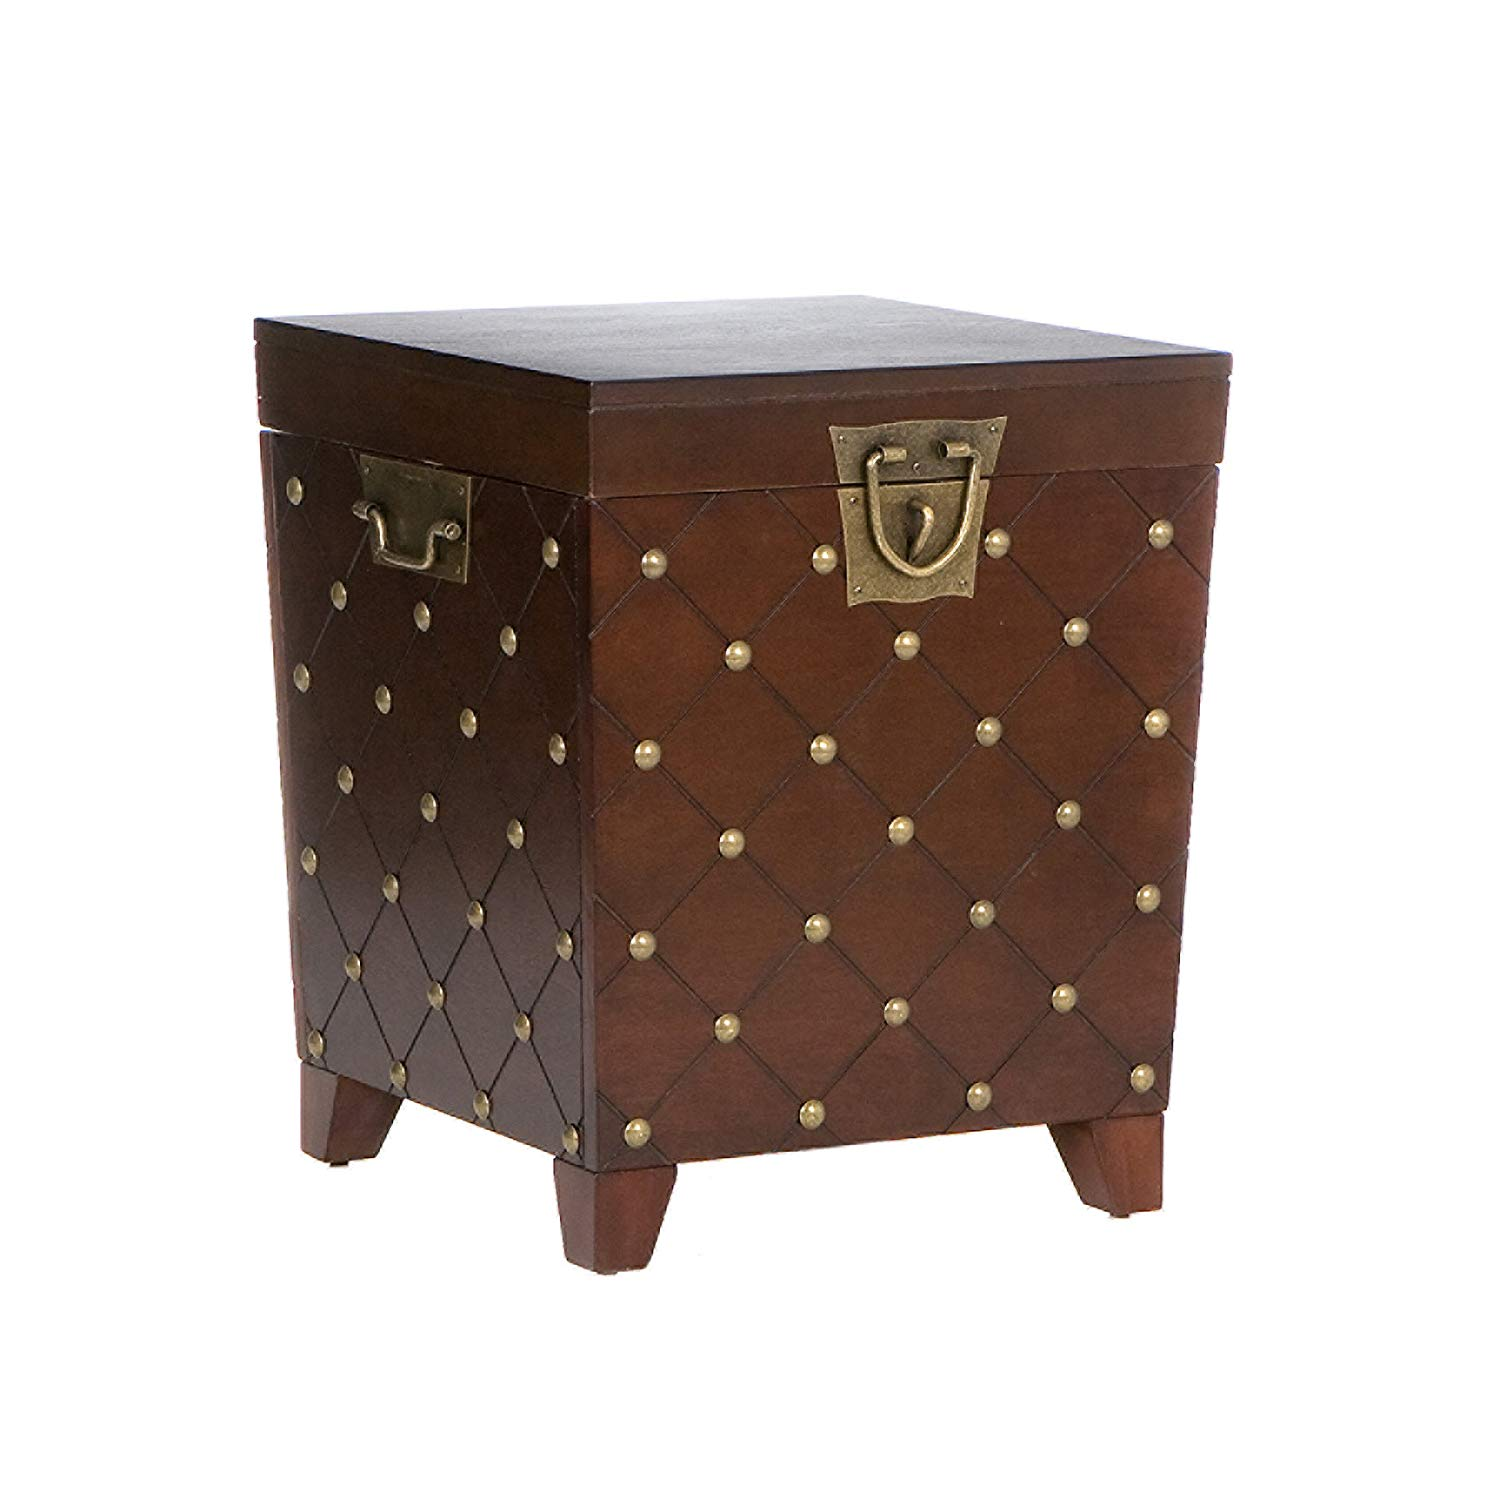 bowery hill nailhead trunk end table espresso accent kitchen dining metal frame coffee with wood top door chest entry wall bunnings swing chair contemporary home decor counter